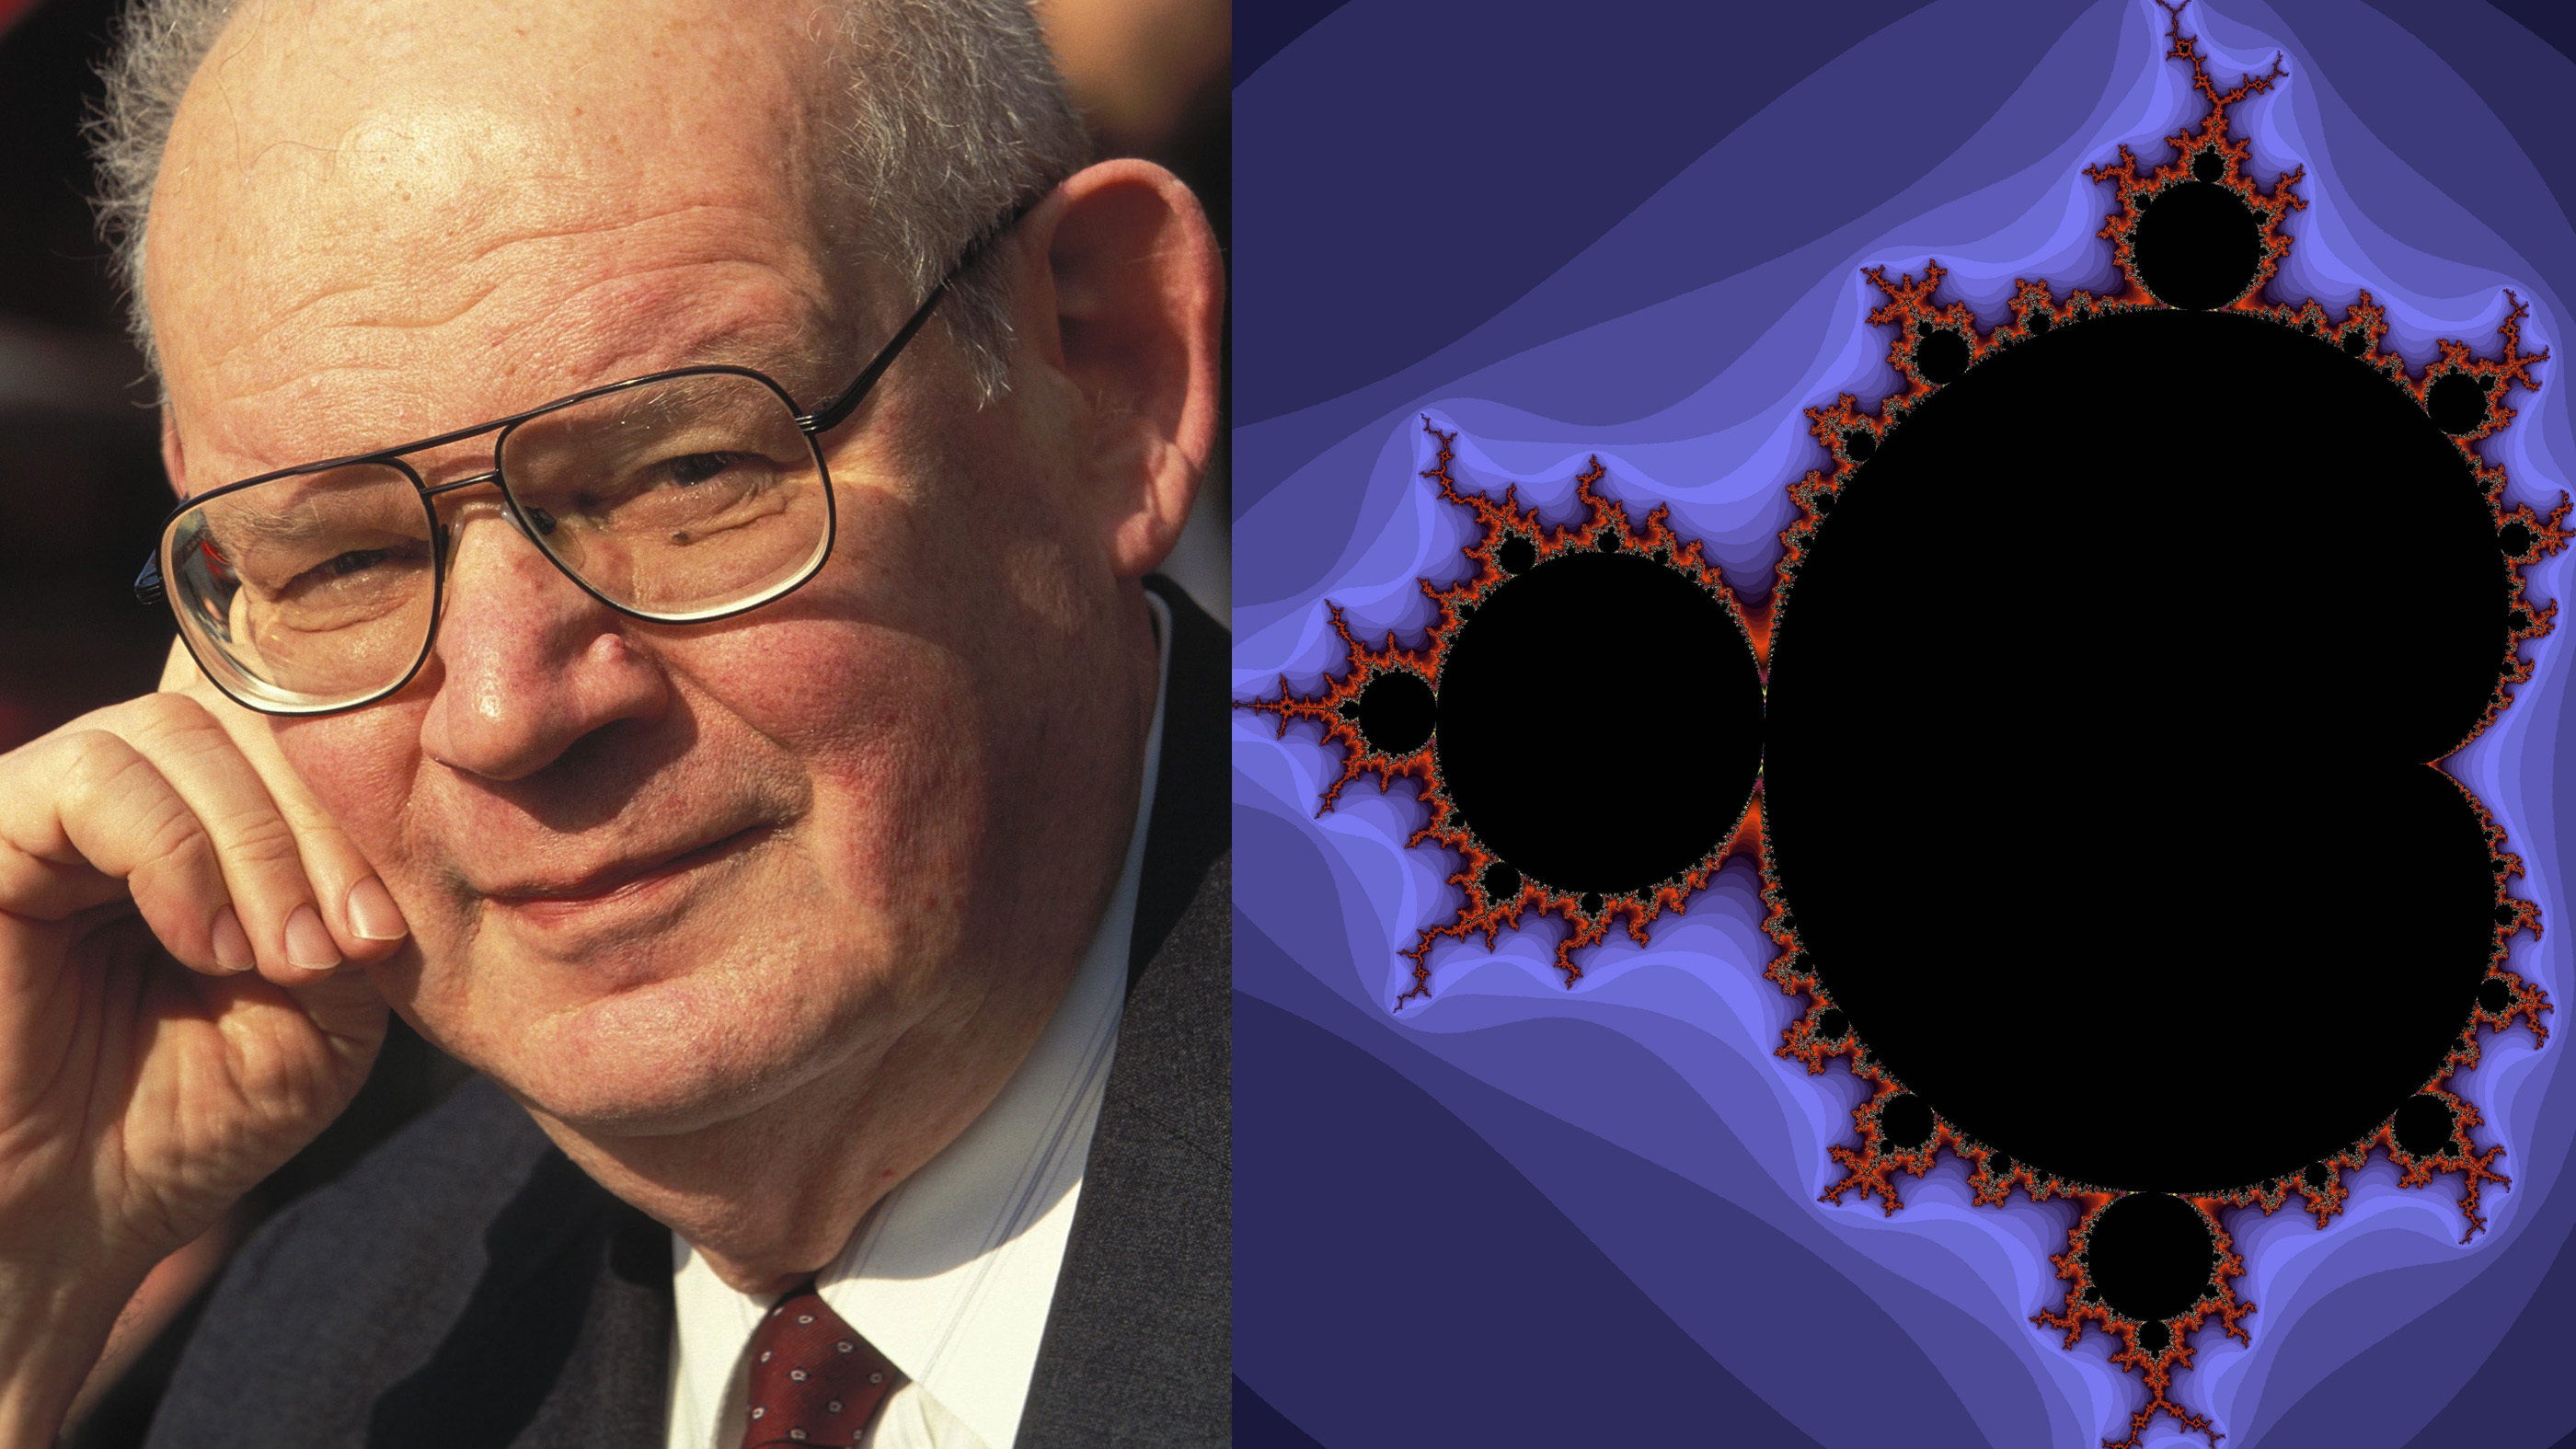 Happy birthday to Benoit Mandelbrot, the discoverer of fractals thumbnail